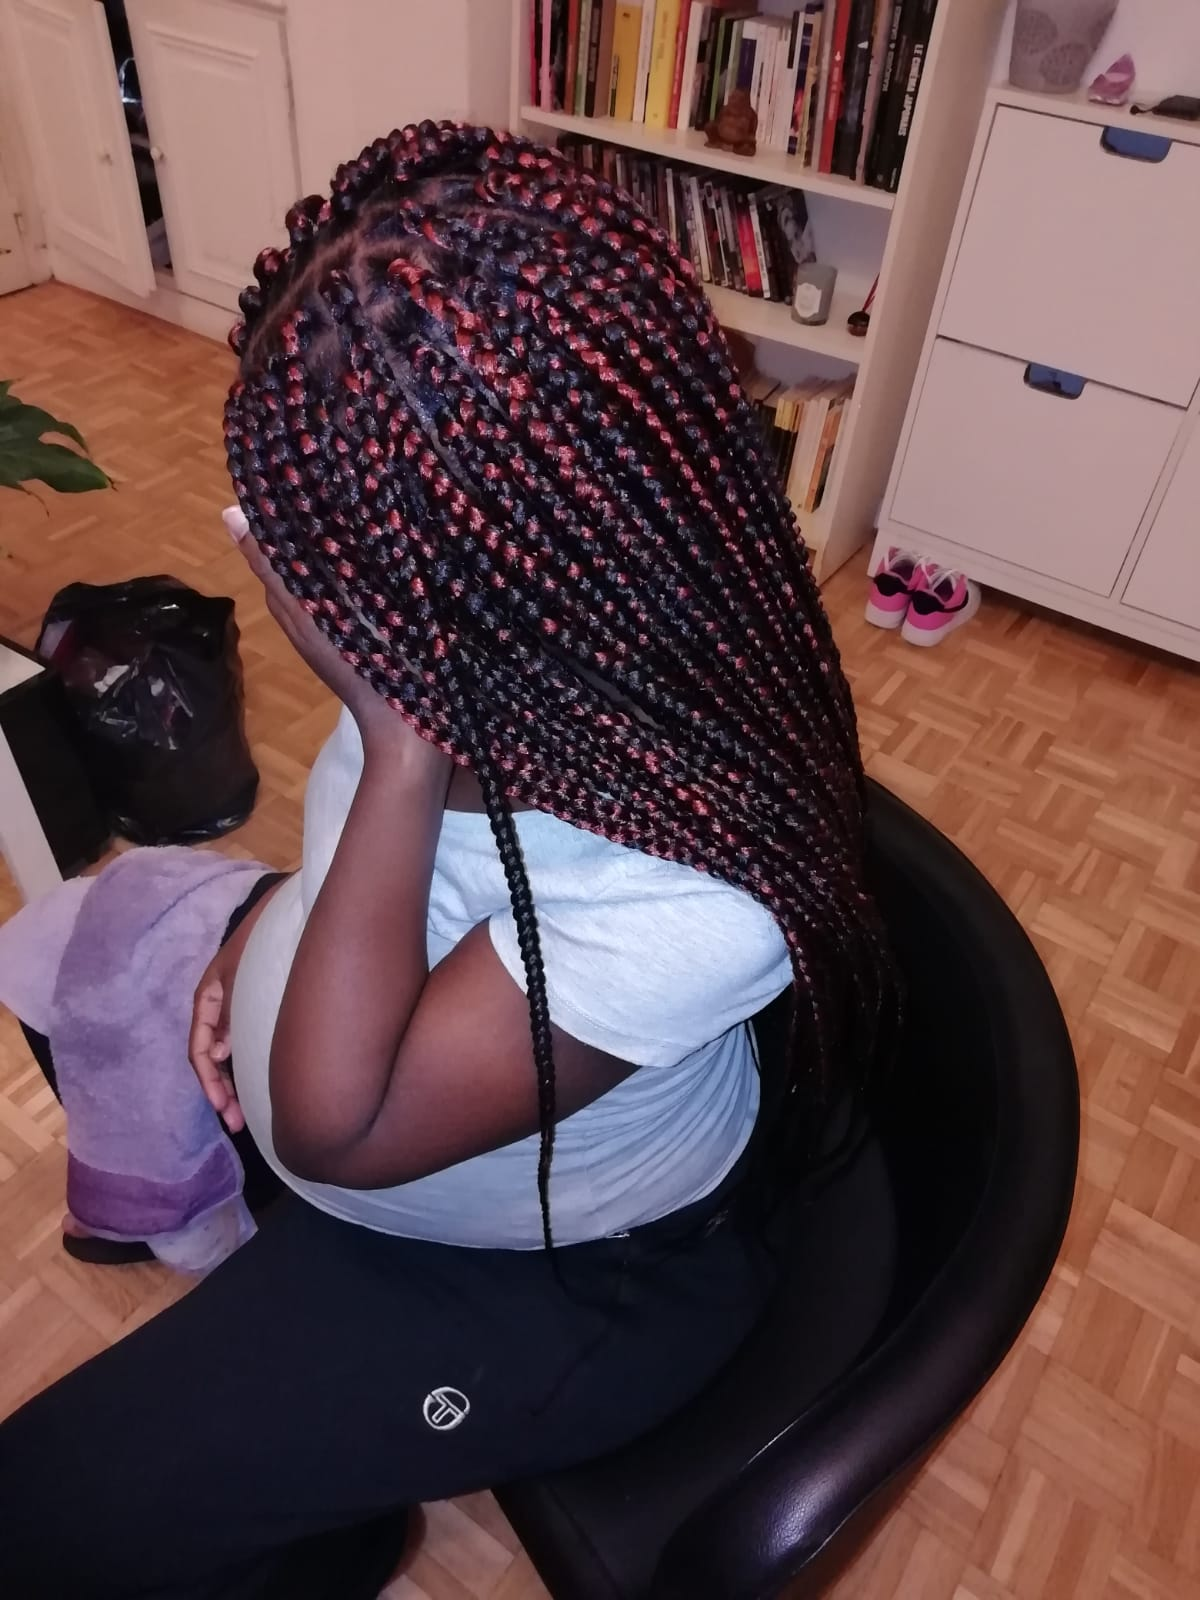 salon de coiffure afro tresse tresses box braids crochet braids vanilles tissages paris 75 77 78 91 92 93 94 95 TJHDWRAM